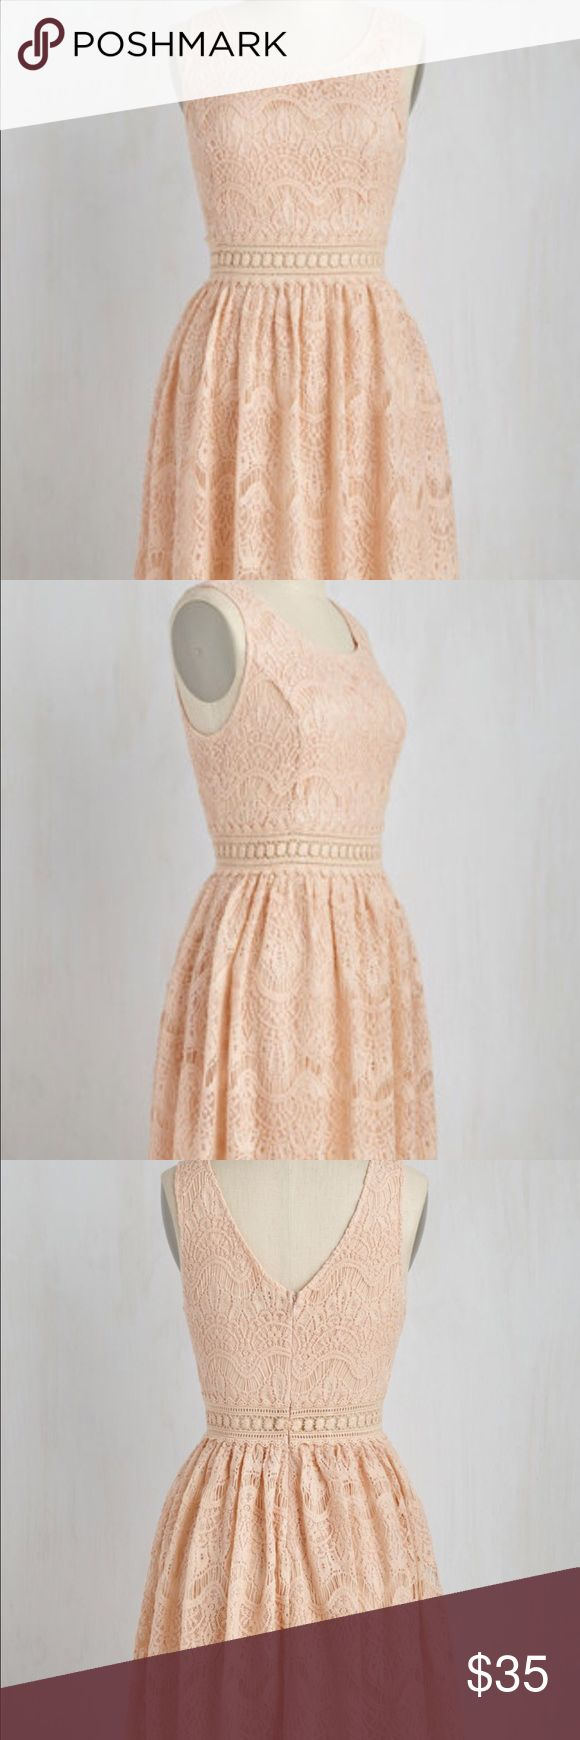 Pretty peach lace dress from Modcloth size S EUC, only worn twice peach lace dress from Modcloth.  Size S, sheer through the waist band, with an extremely flattering fit.  I just never reach for it! ModCloth Dresses